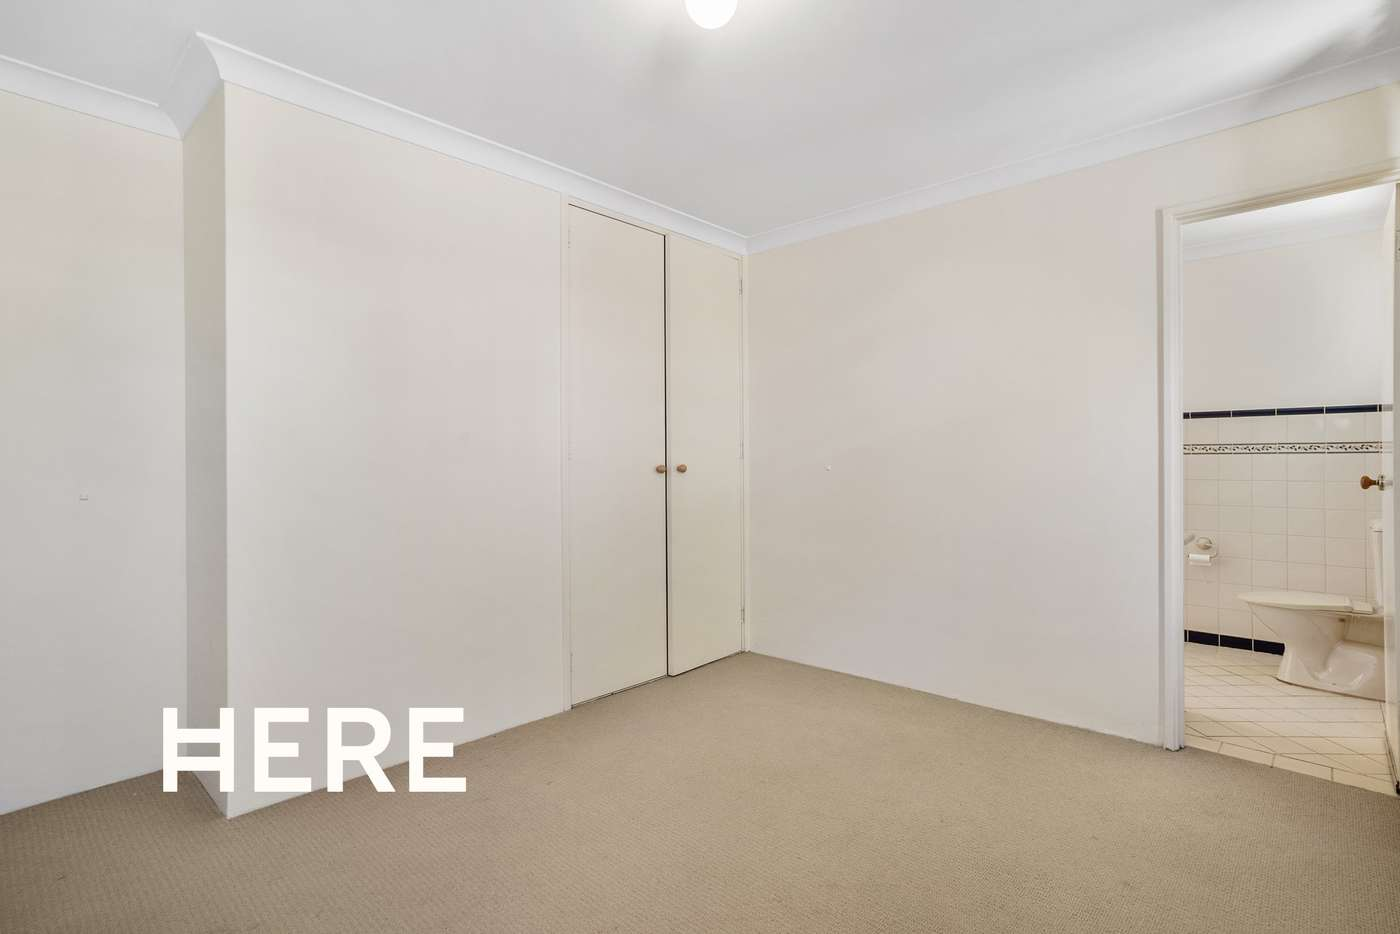 Seventh view of Homely house listing, 194 York Street, Subiaco WA 6008